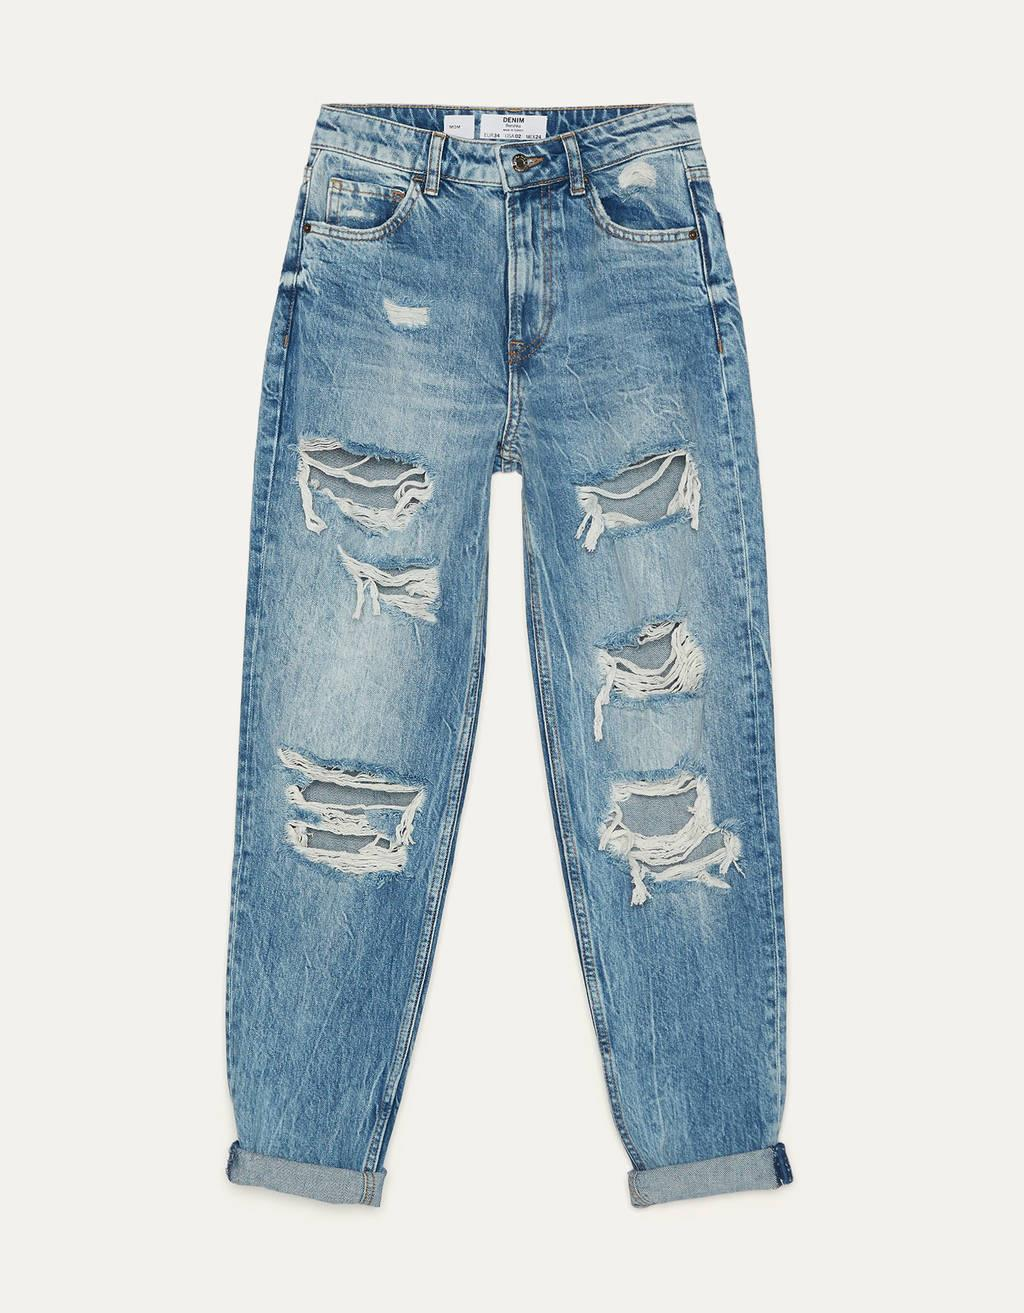 Vaqueros rotos estilo mom fit, de Bershka